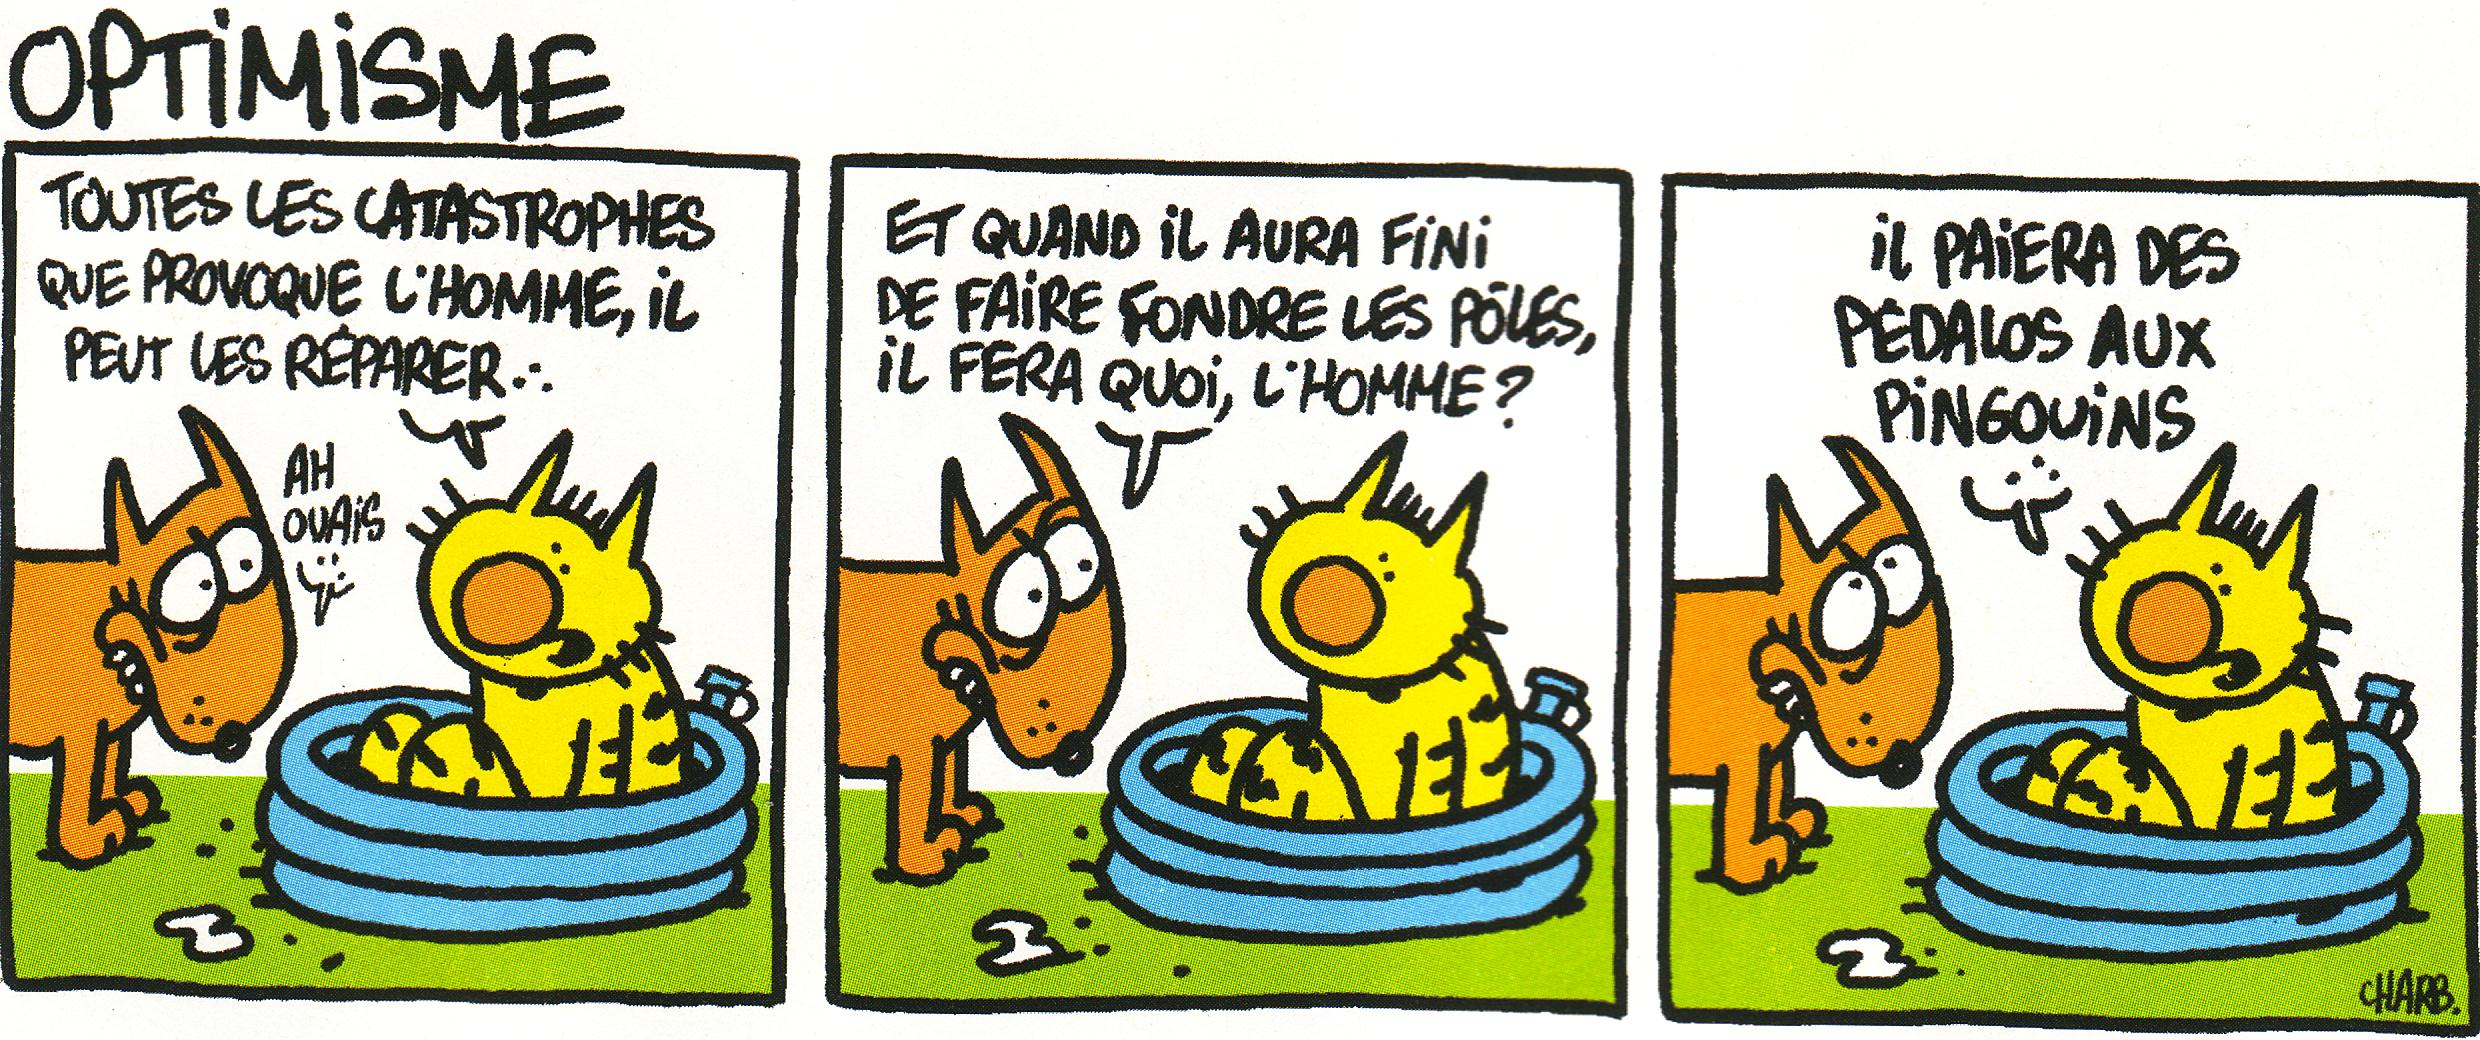 [Image: Charb%20-%20Maurice%20et%20Patapon%20-%20Optimisme.JPG]